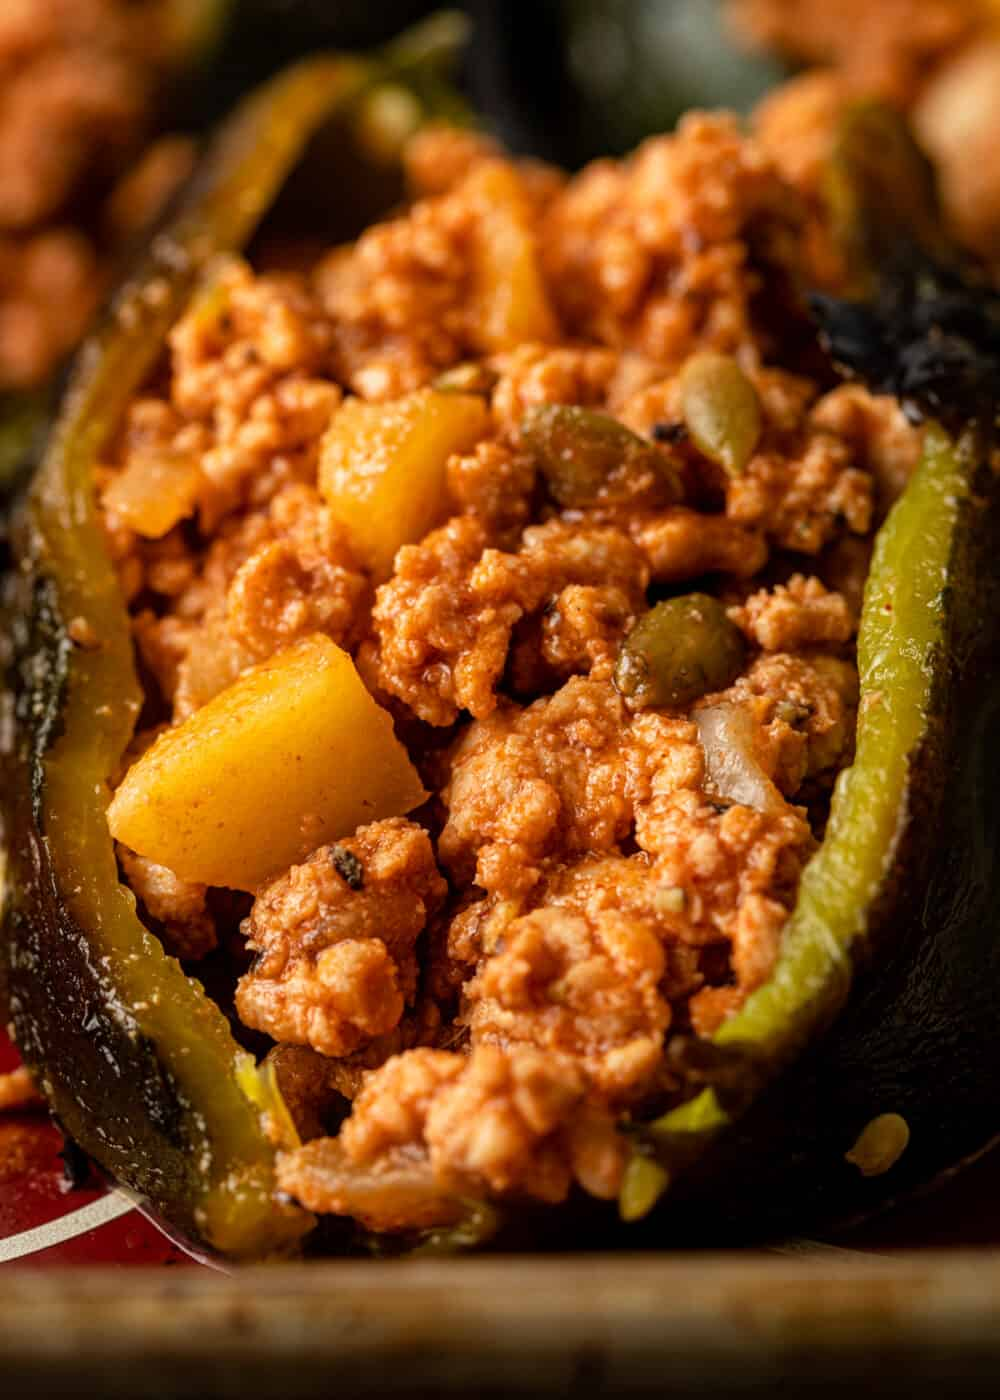 closeup: ground chicken and apple filling in stuffed green peppers